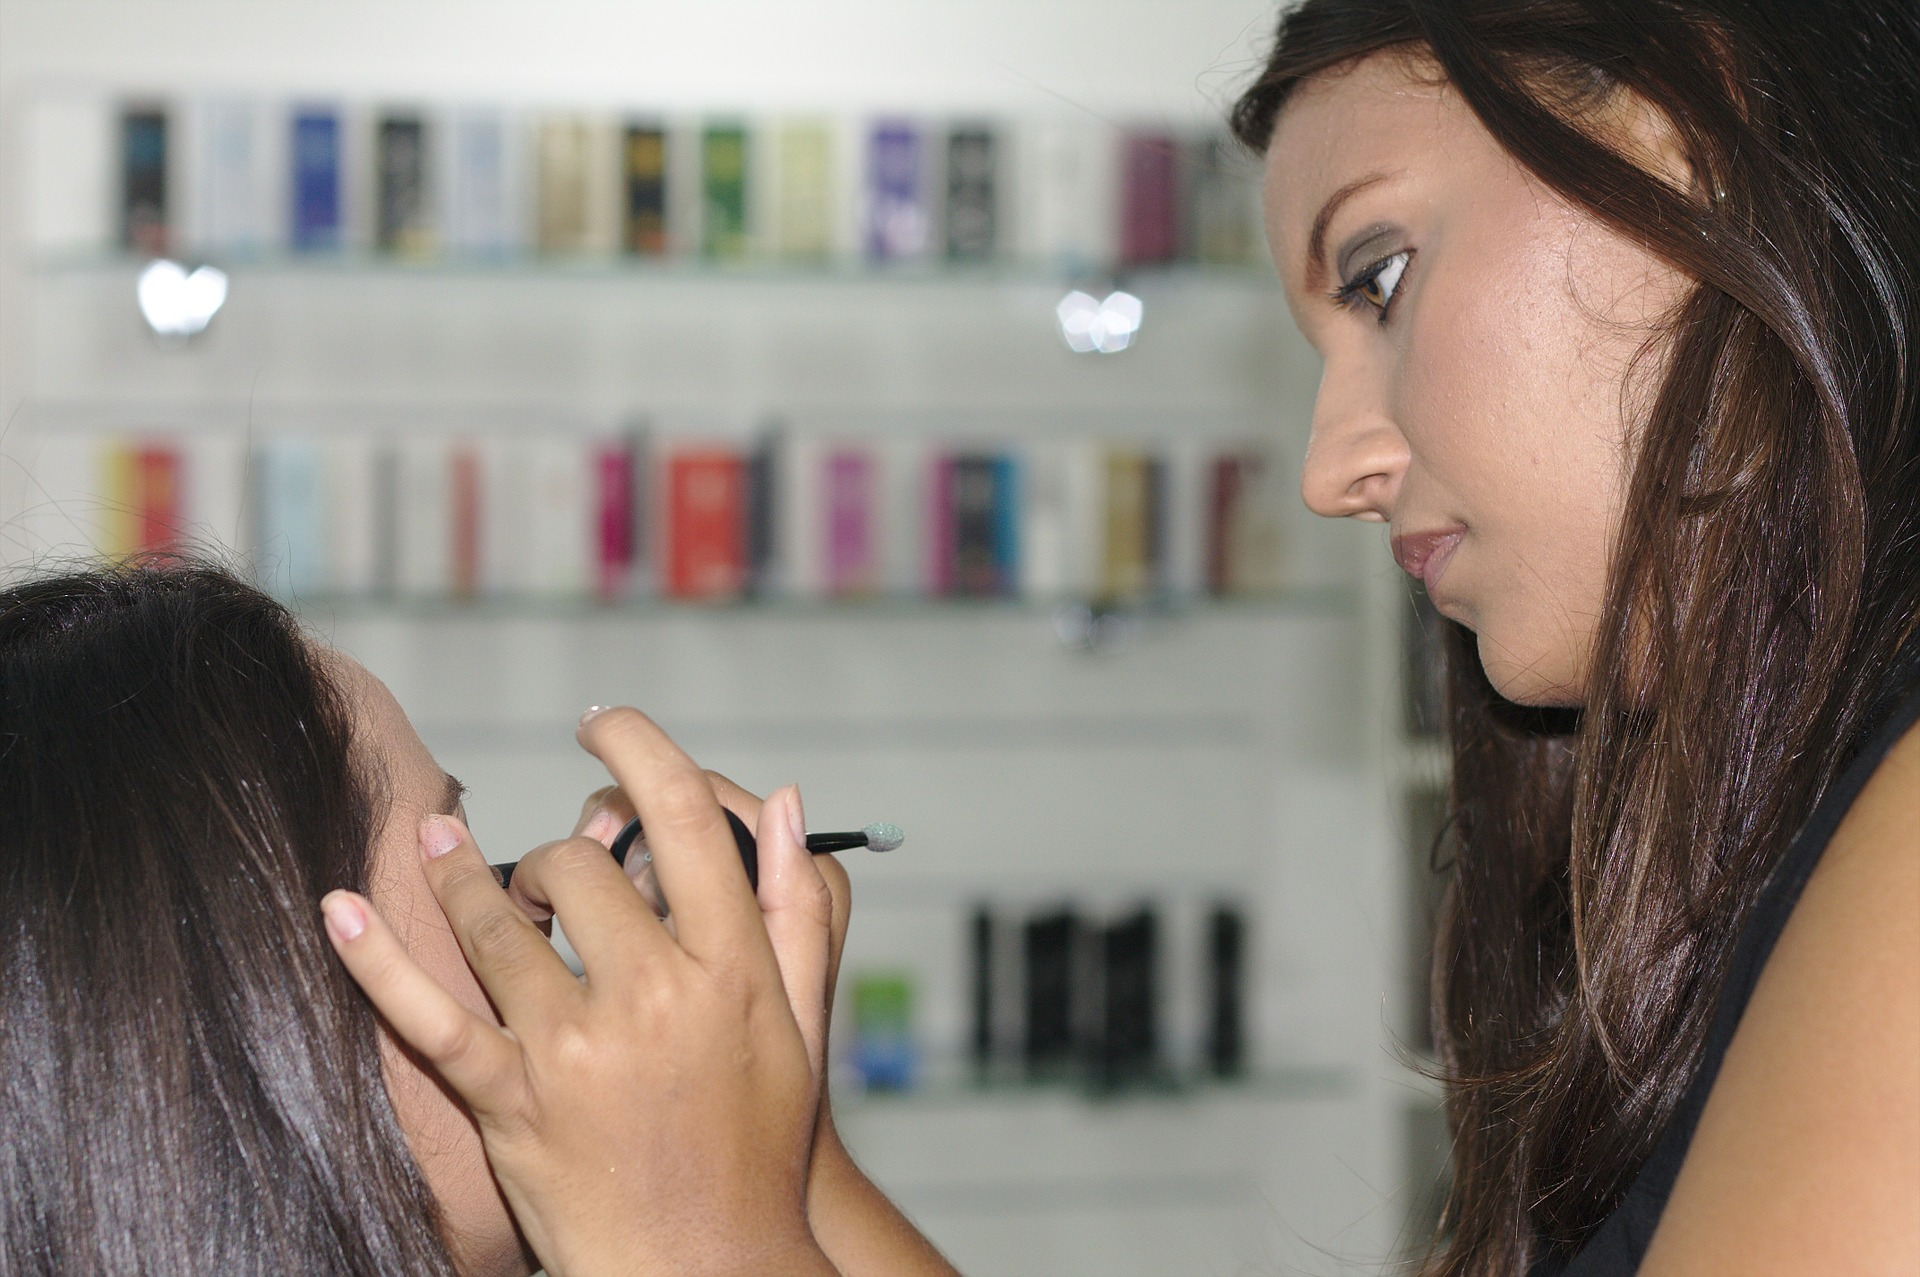 Make up artist is putting a eyeliner to her customer